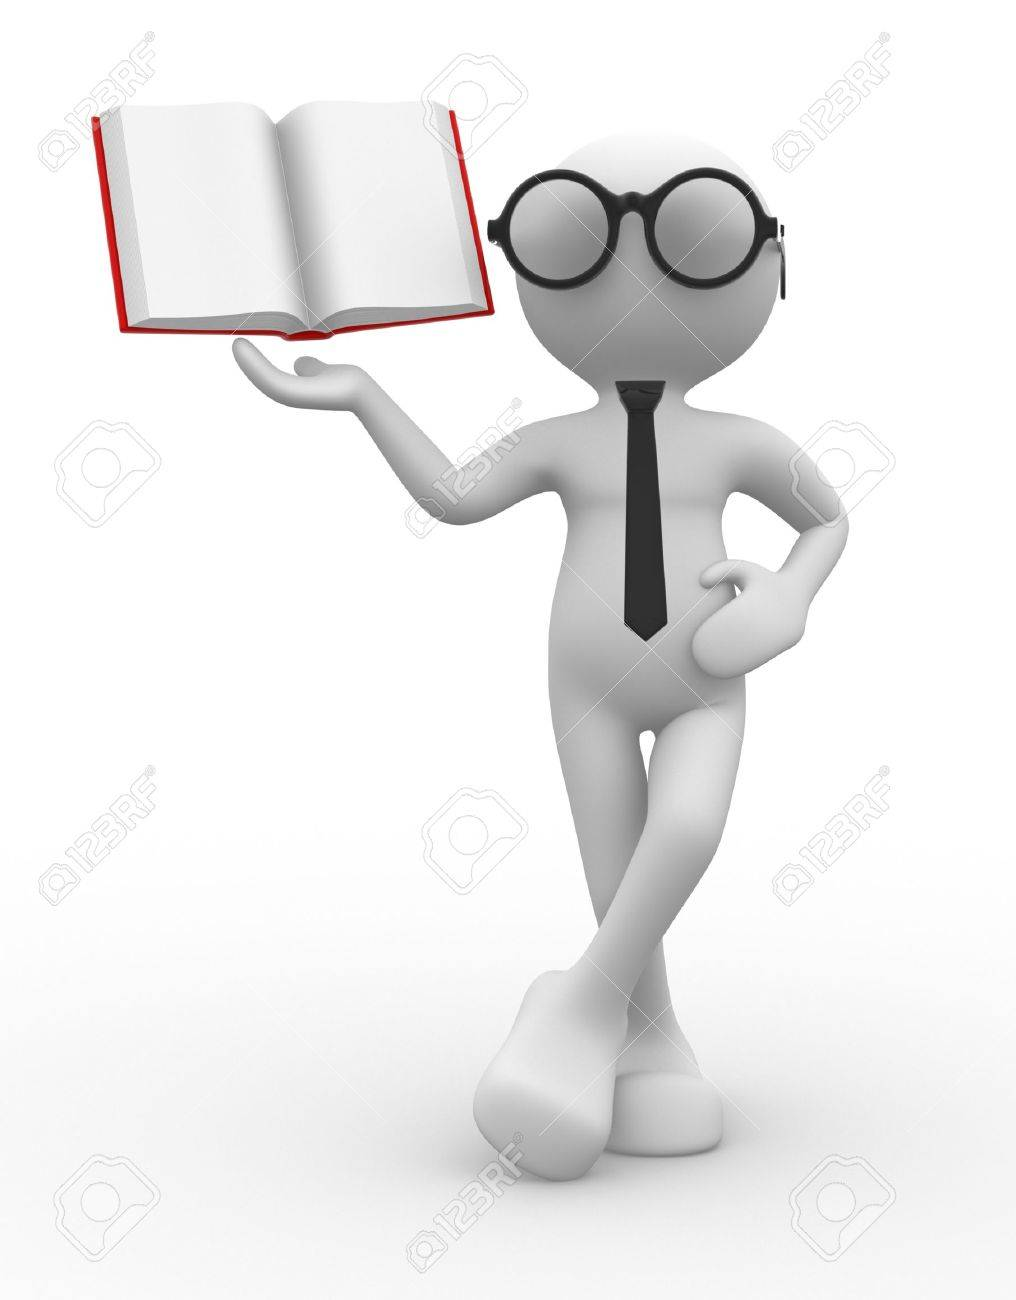 3d people - man, person and a book. Stock Photo - 14814987